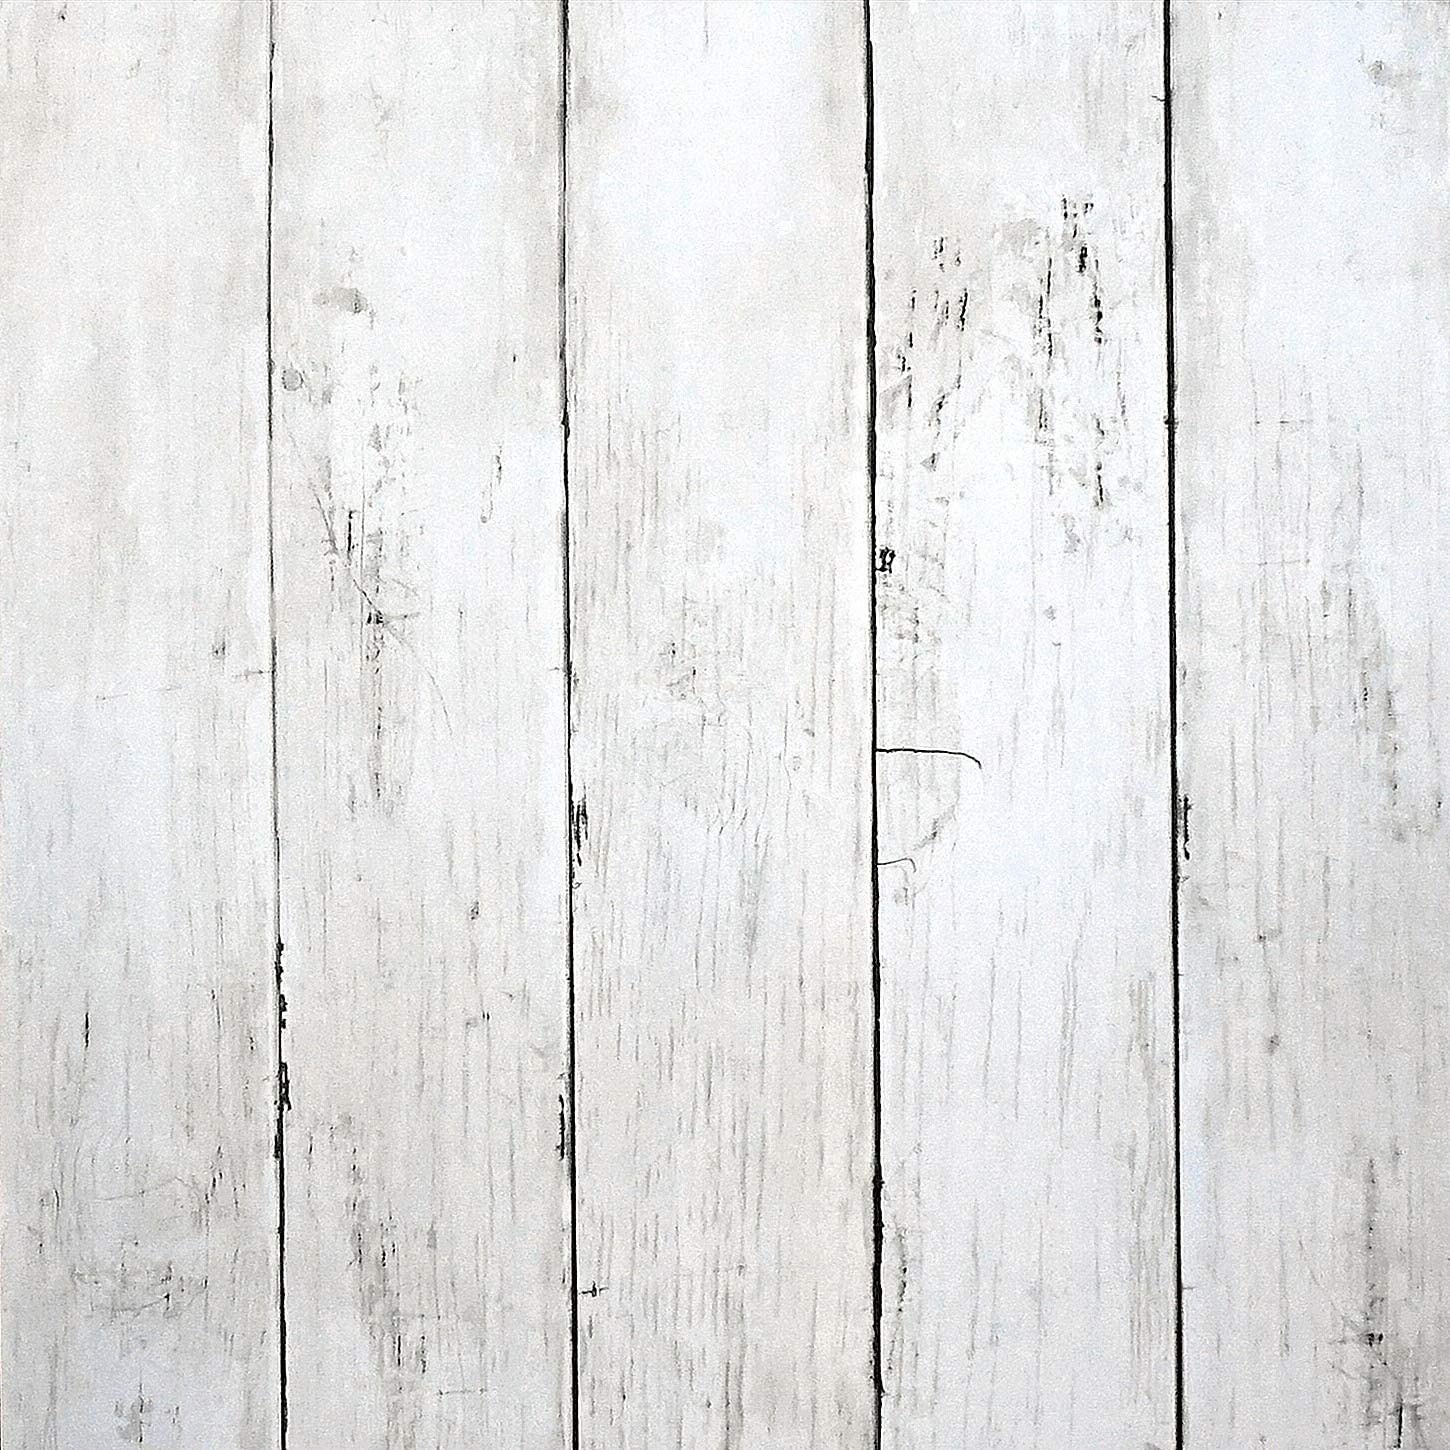 """White Wood Peel and Stick Wallpaper 197""""x17.7"""" White Wood Wallpaper White Wood Removable Vintage Wood Plank Wallpaper Self Adhesive Decorative Wall Covering Vinyl Film Shelf Drawer Liner Roll"""